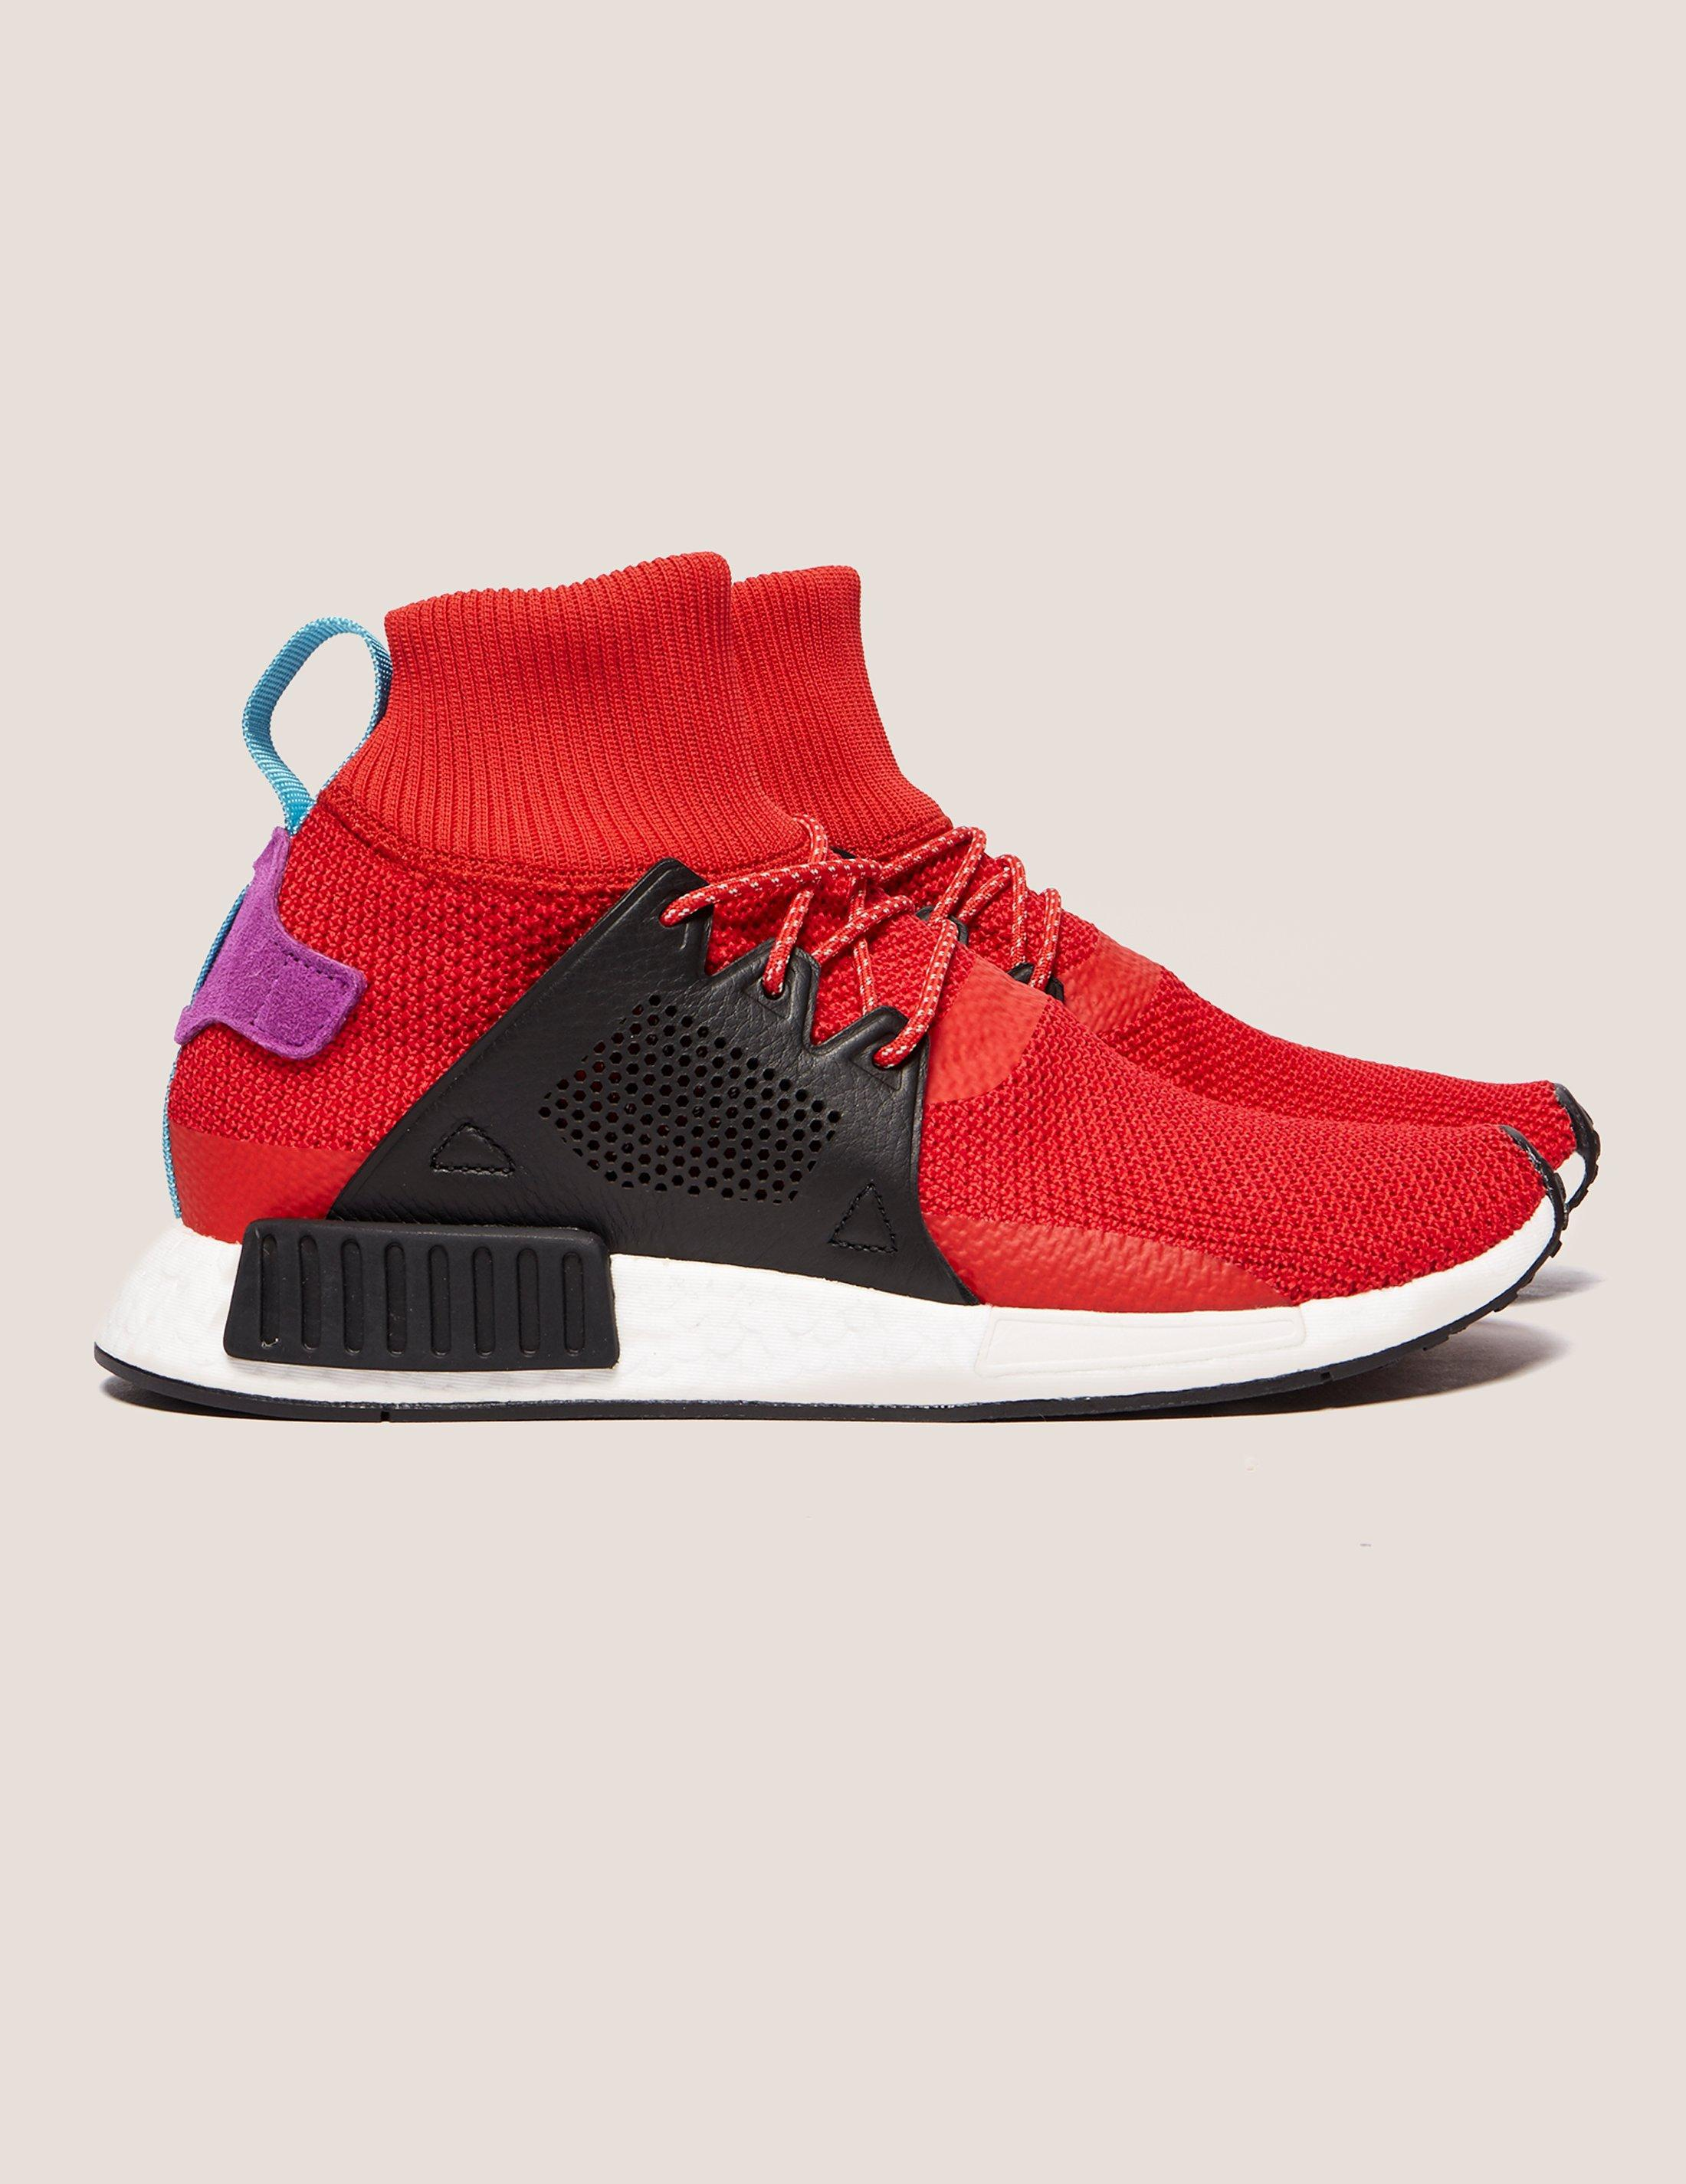 big sale 60fe4 82dc4 ... various styles Lyst - Adidas Originals Mens Nmd Xr1 Winter Red in Red  for Men 4d8cd ...